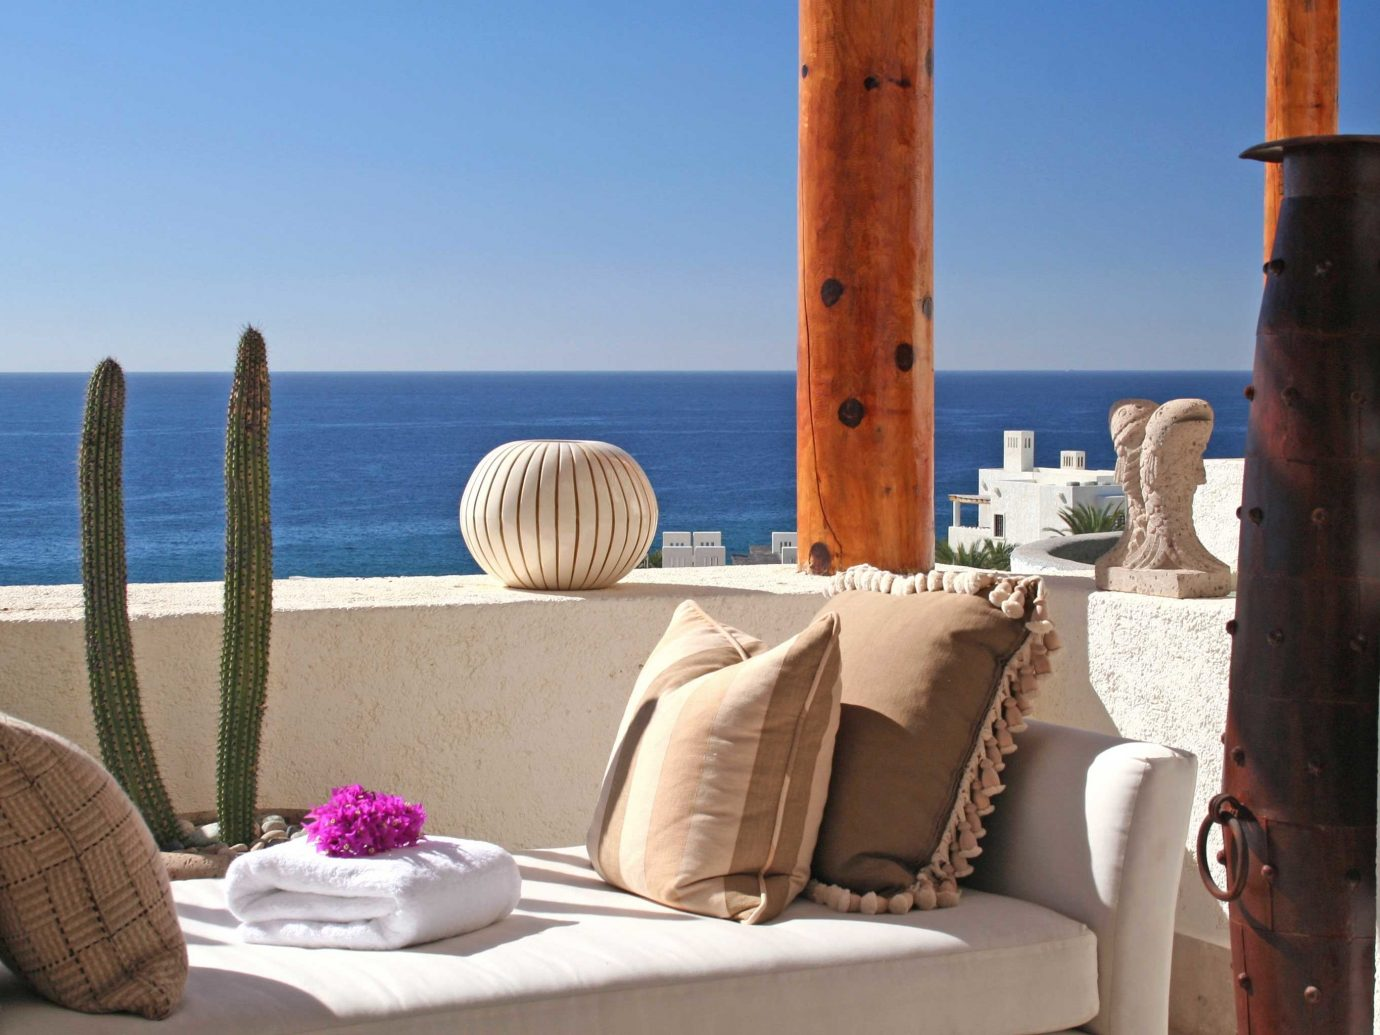 Beachfront Hotels Living Lounge Luxury Travel Offbeat Scenic views Tropical sky outdoor property vacation Beach Sea home Ocean Coast estate Resort cottage Villa